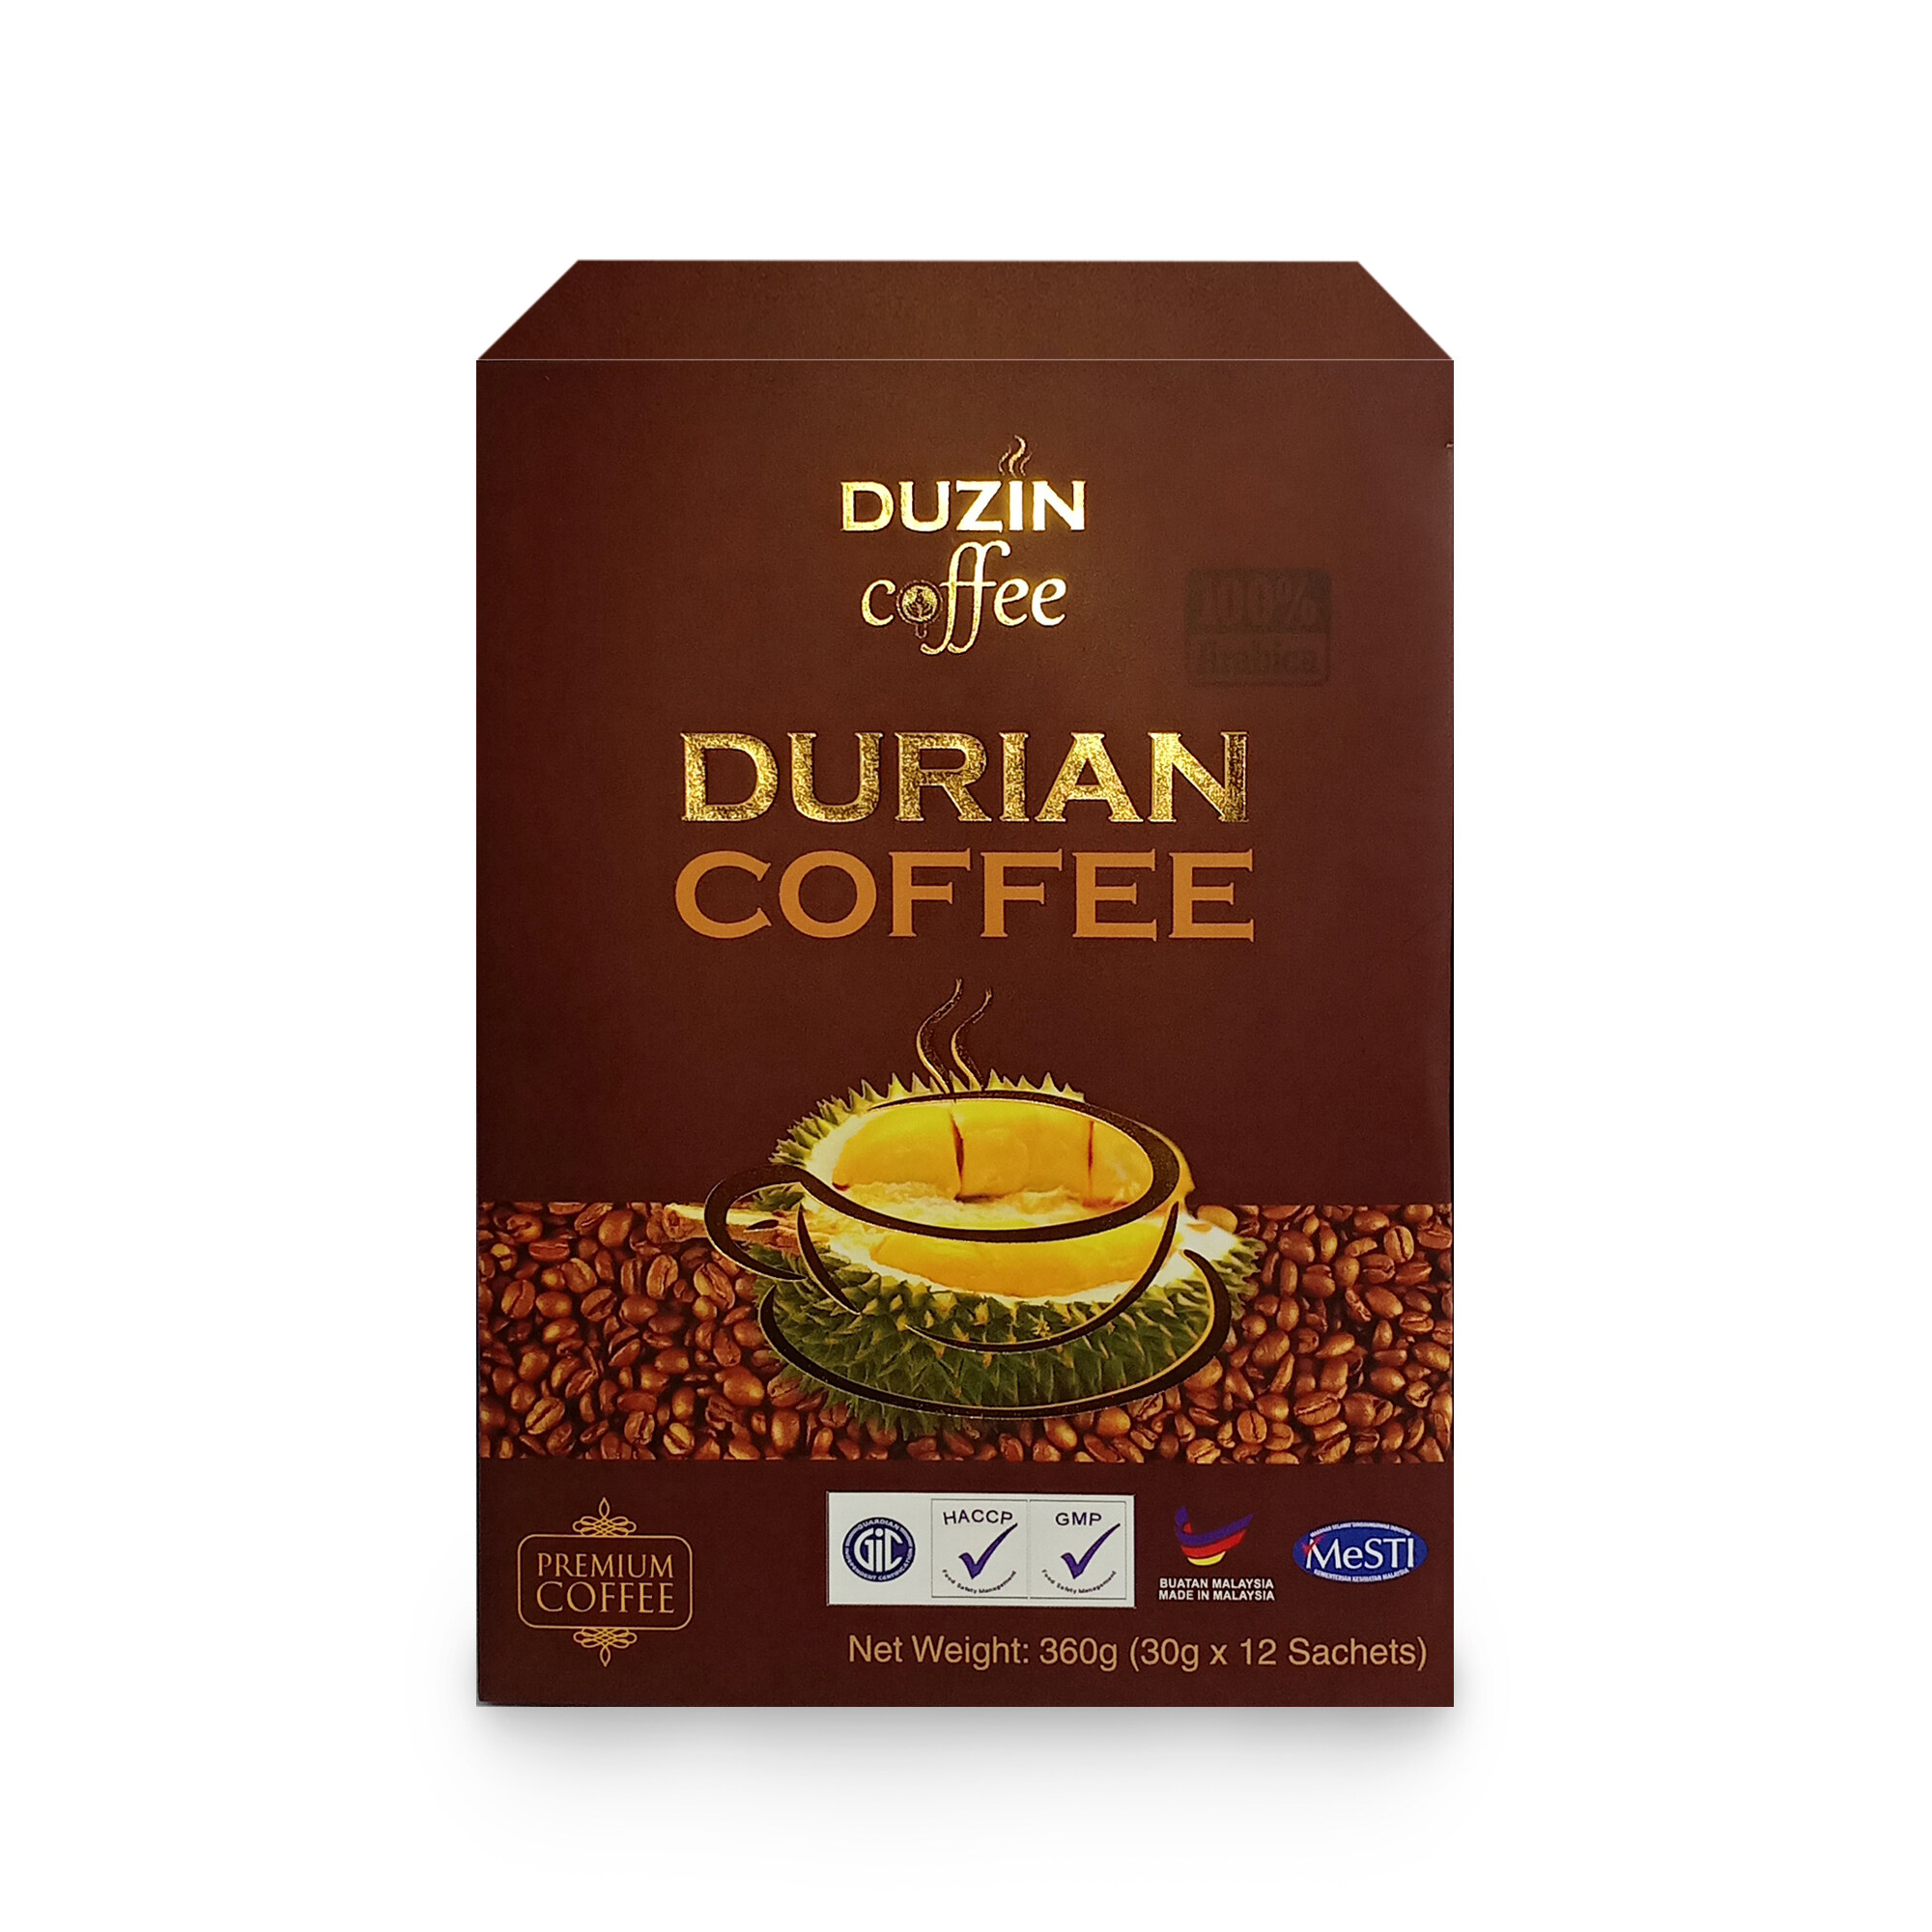 Duzin Durian Coffee Premium Arabica Coffee Aromatic taste Regulate Instant Coffee Thyroid Gland Relaxes Nerve & Muscle Beverage Drinks EXP March 2021